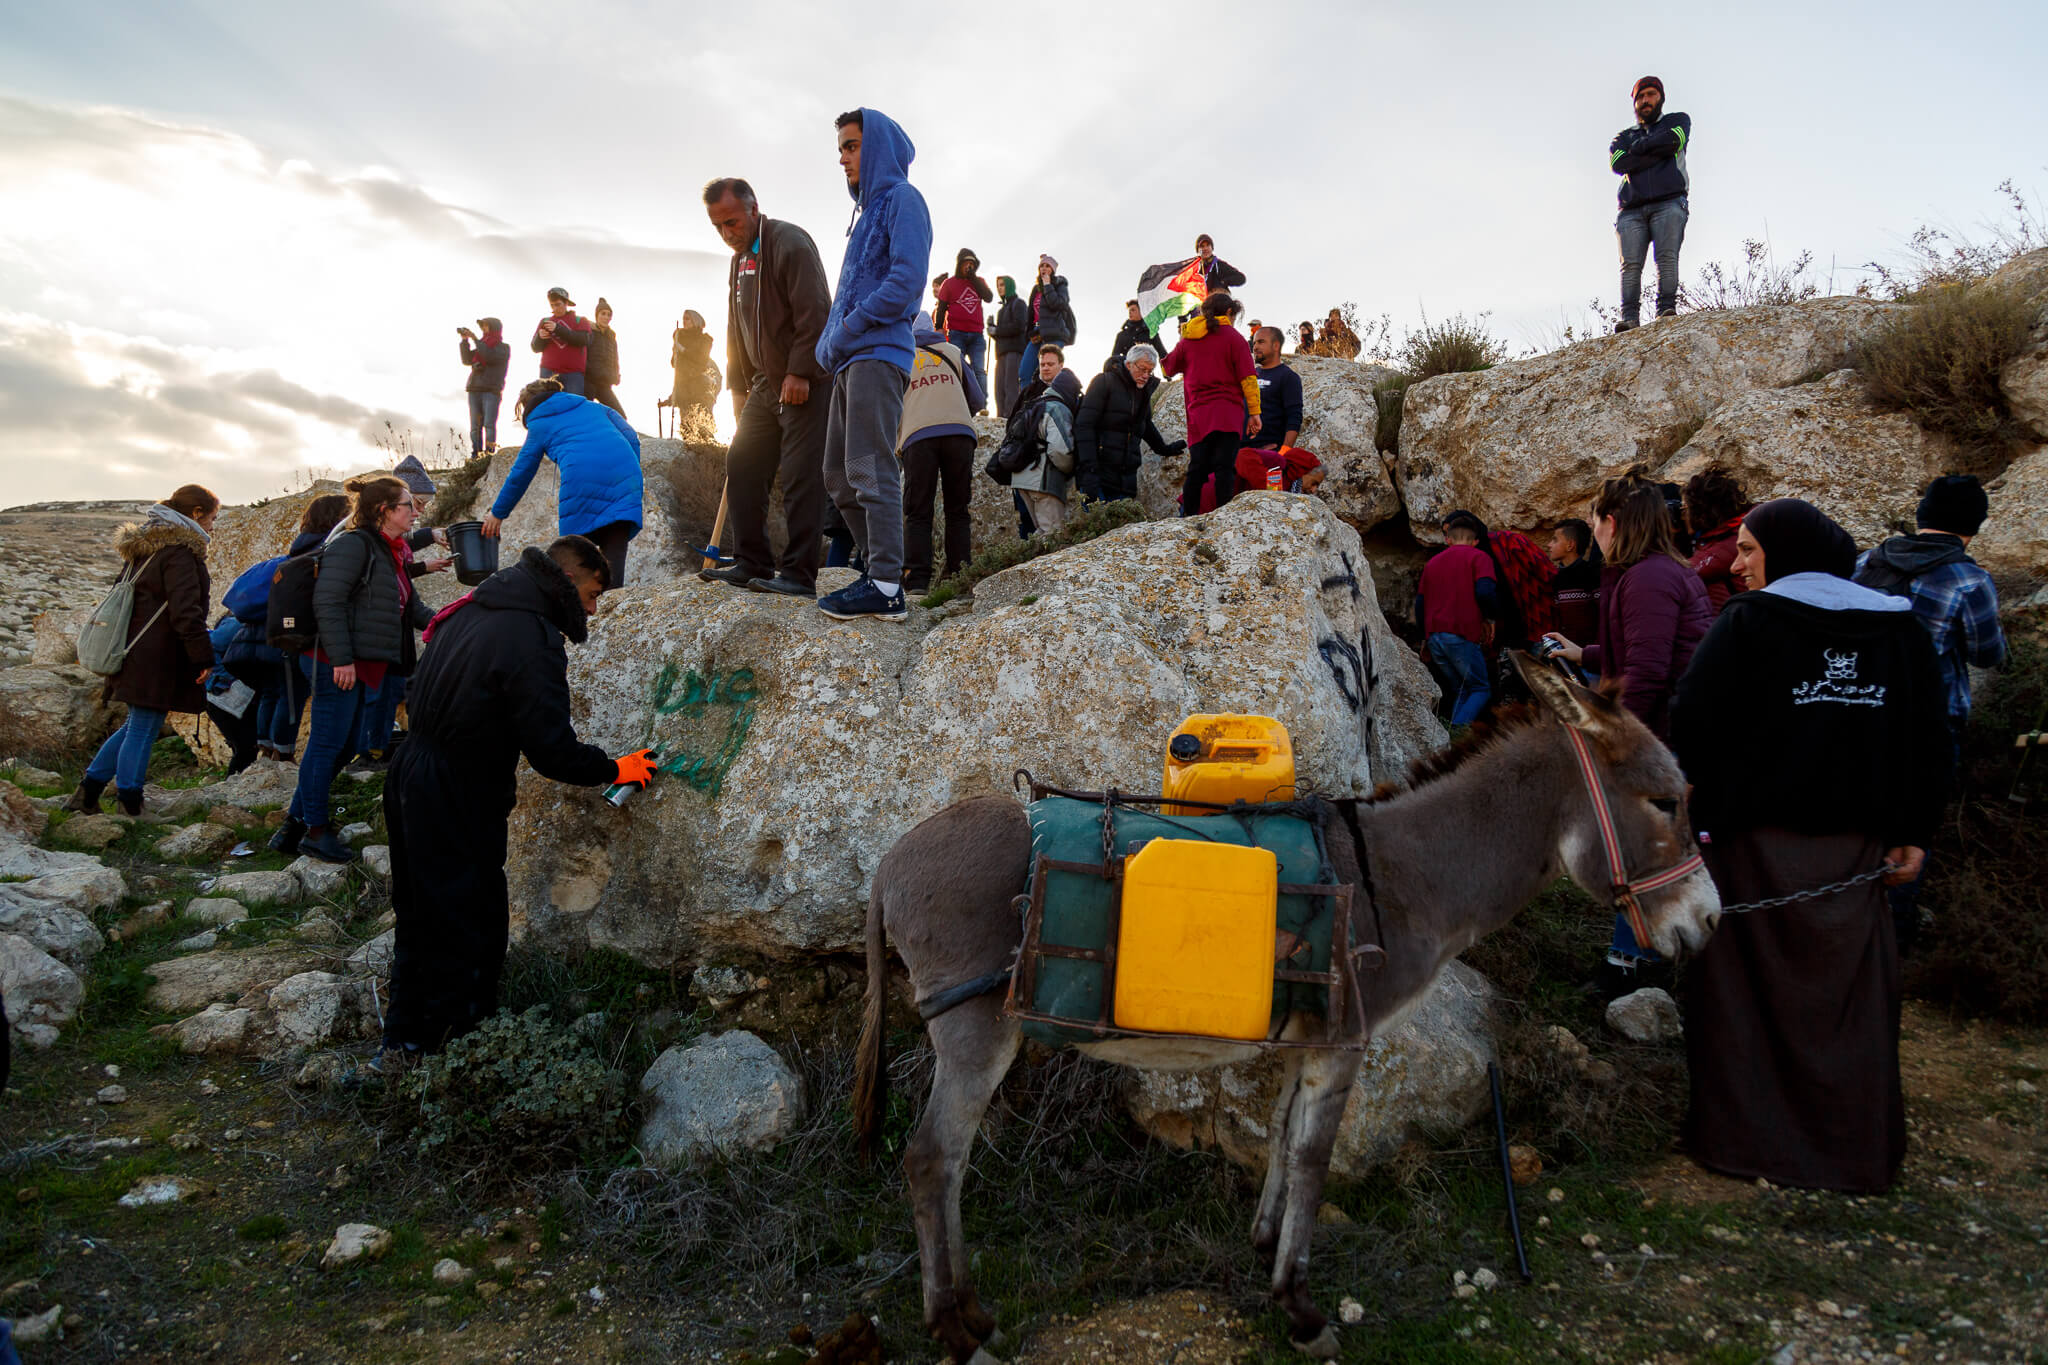 Palestinians and activists gather by Ein al-Beida in the South Hebron Hills, accessing the natural spring for a first time in a decade and a half after it was confiscated by a nearby Israeli outpost. (Photo: Miriam Deprez)